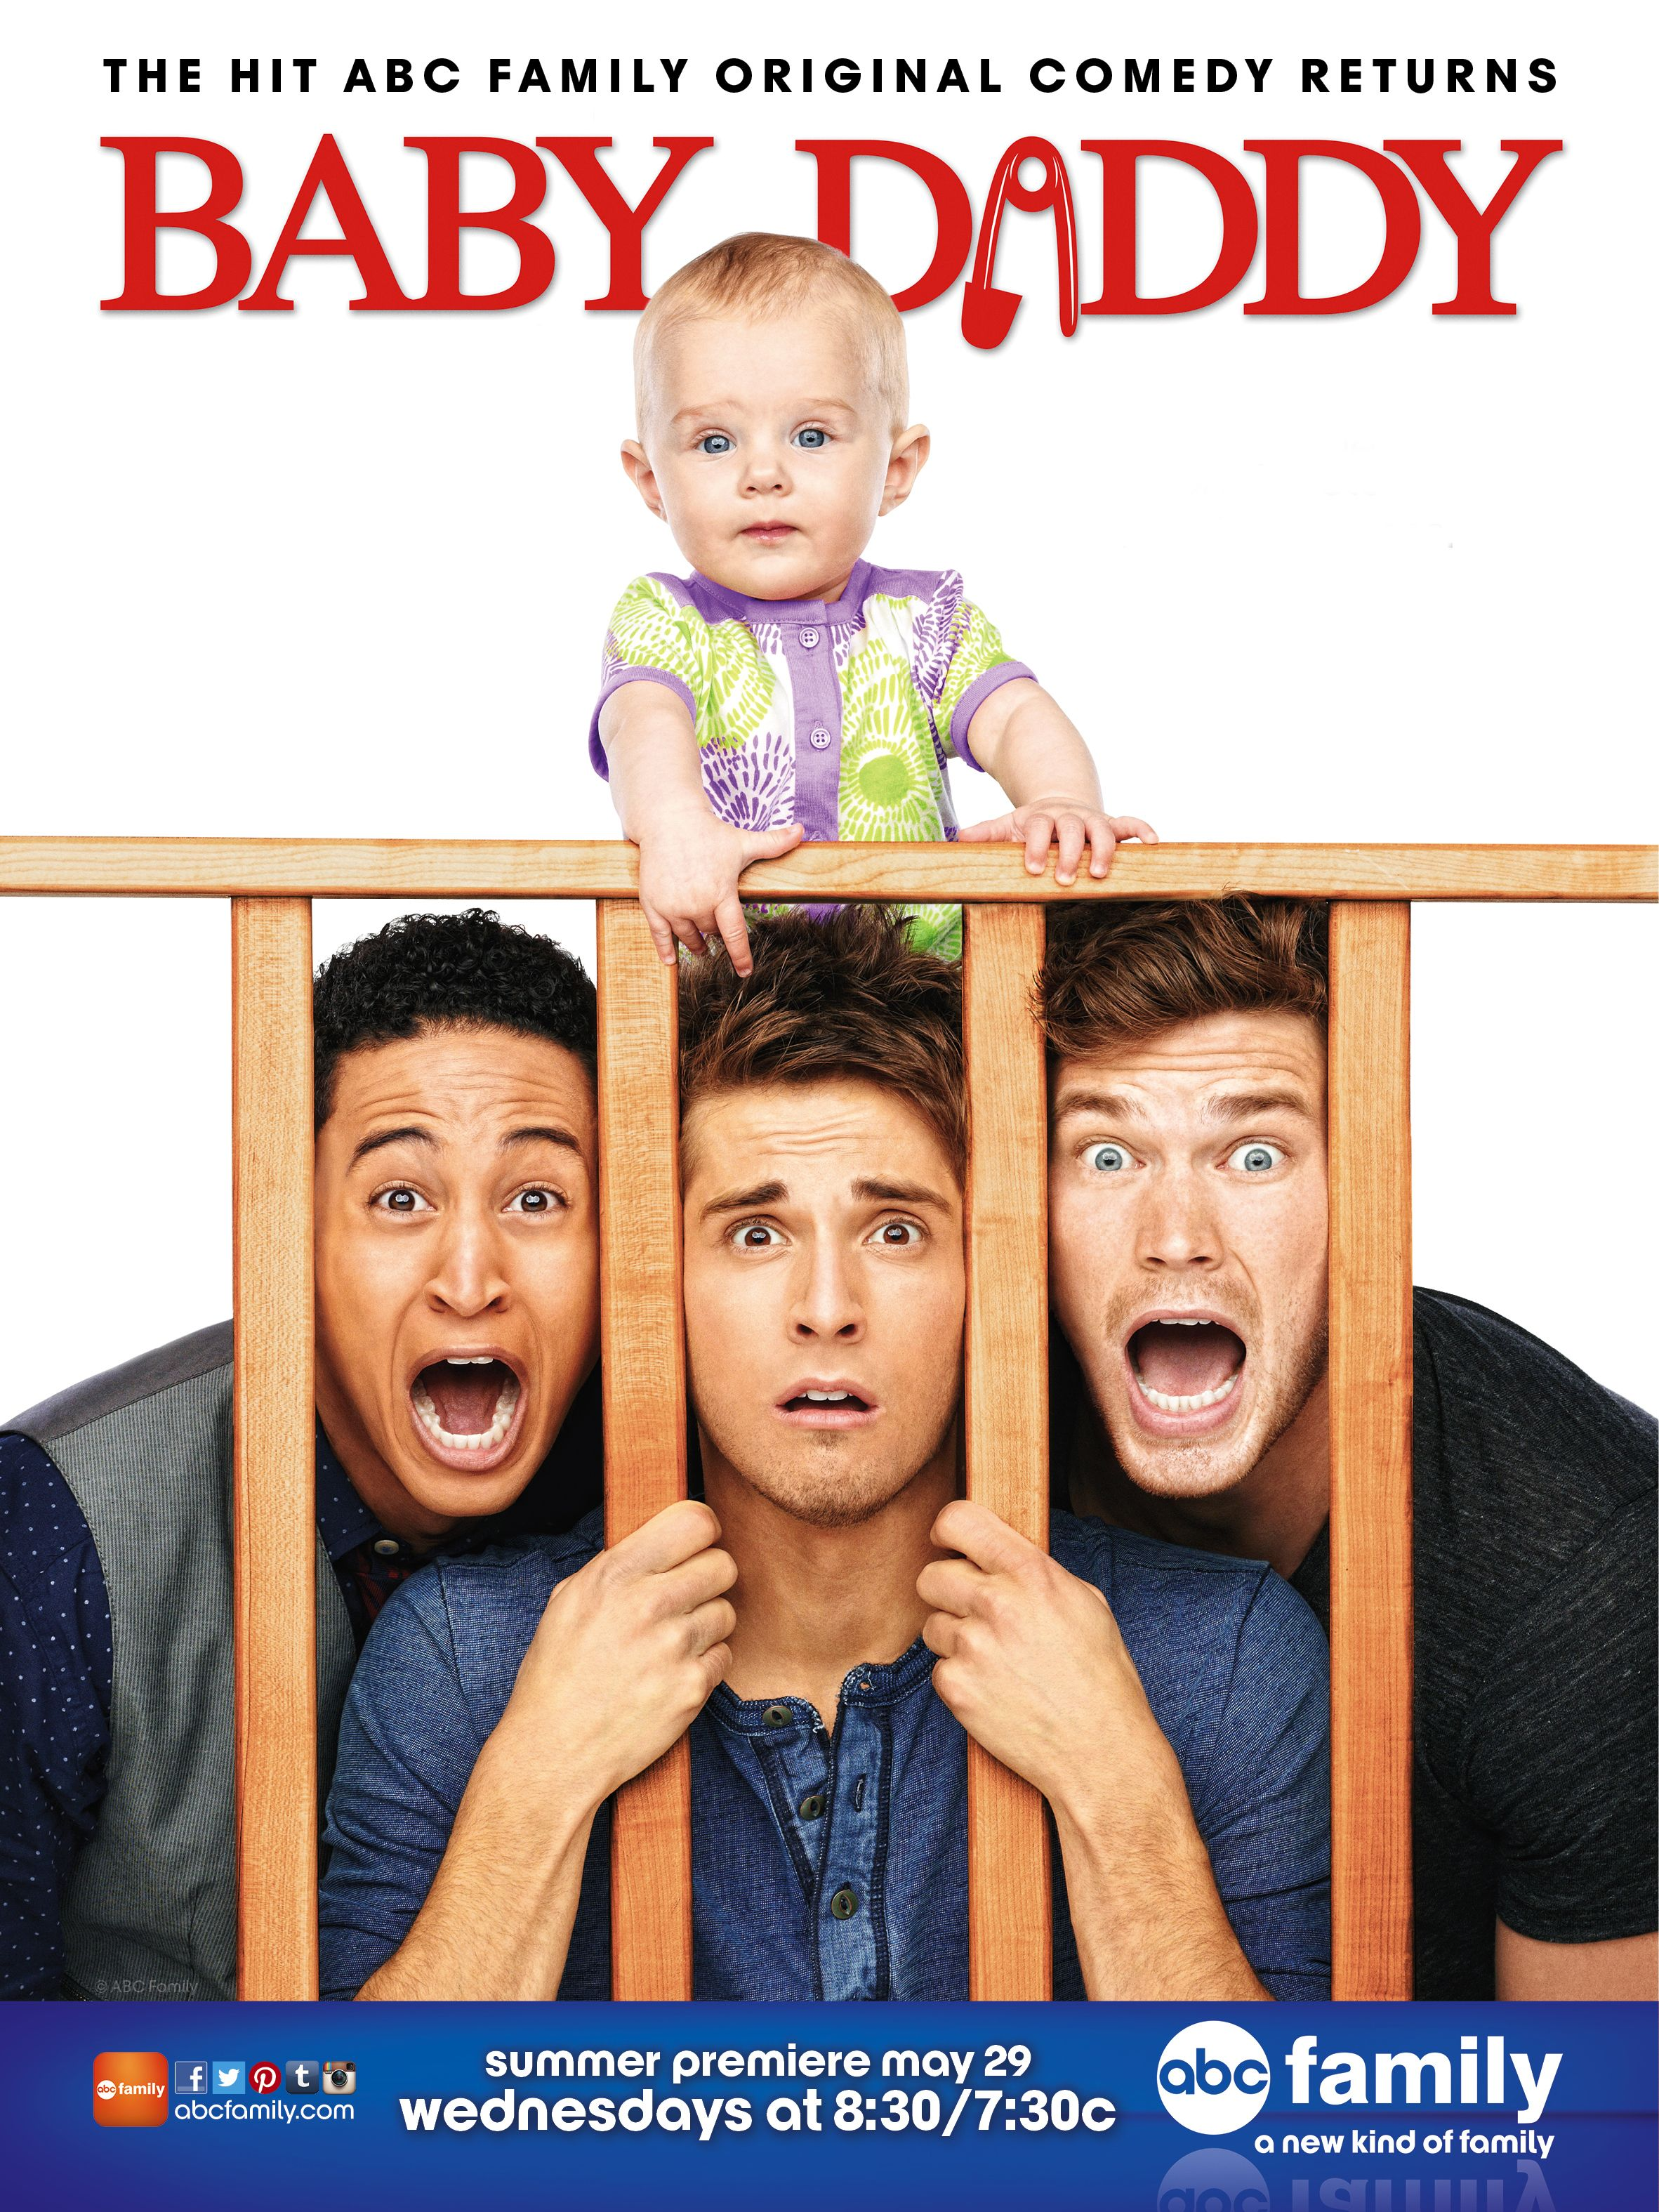 Check out this new poster for Baby Daddy! Baby Daddy